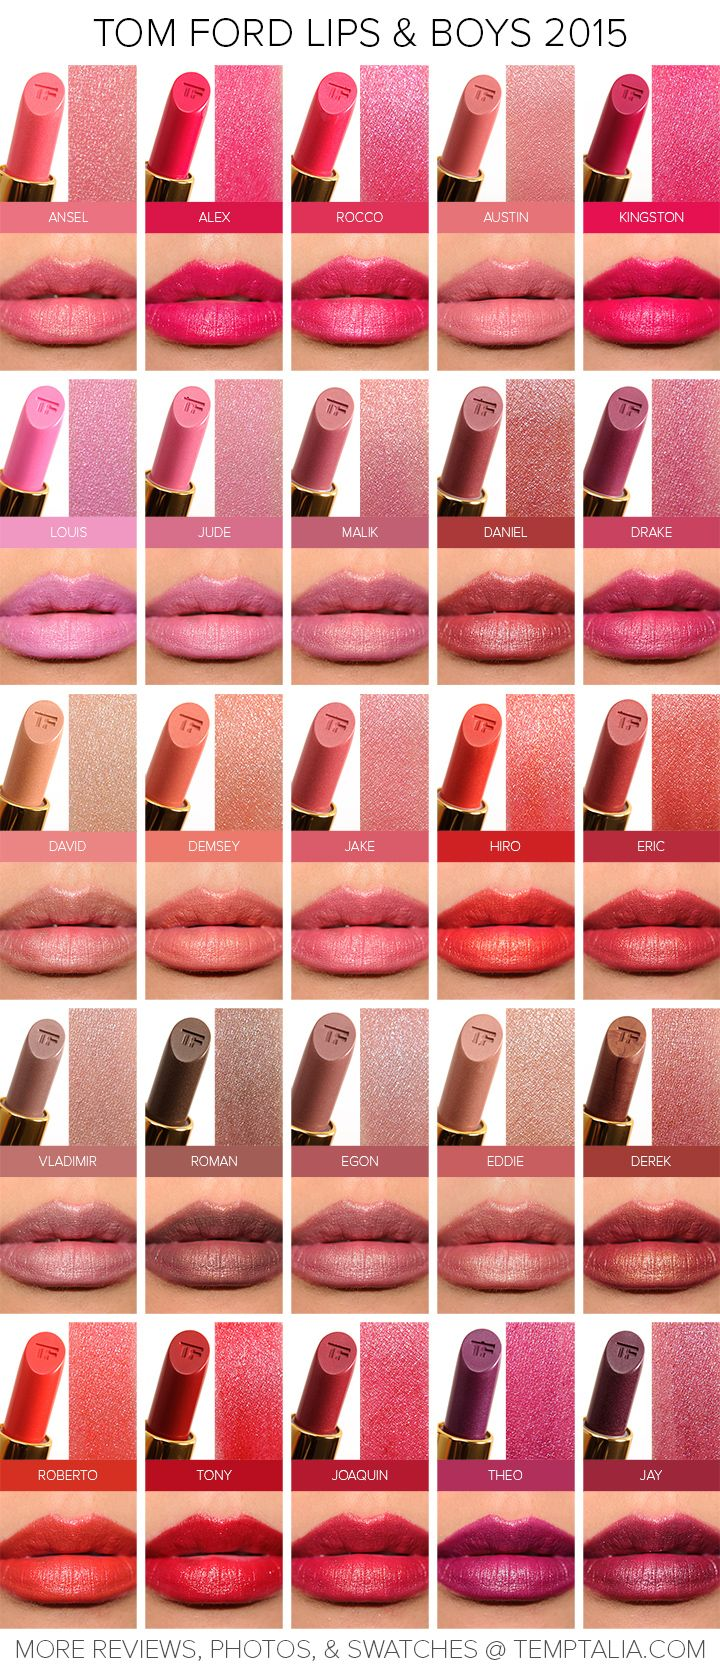 Tom Ford Lips & Boys Collection Tom Ford Lips & Boys Collection ($35.00 for 0.07 oz.) is a set of 25 new and 25 returning shades (from last year's